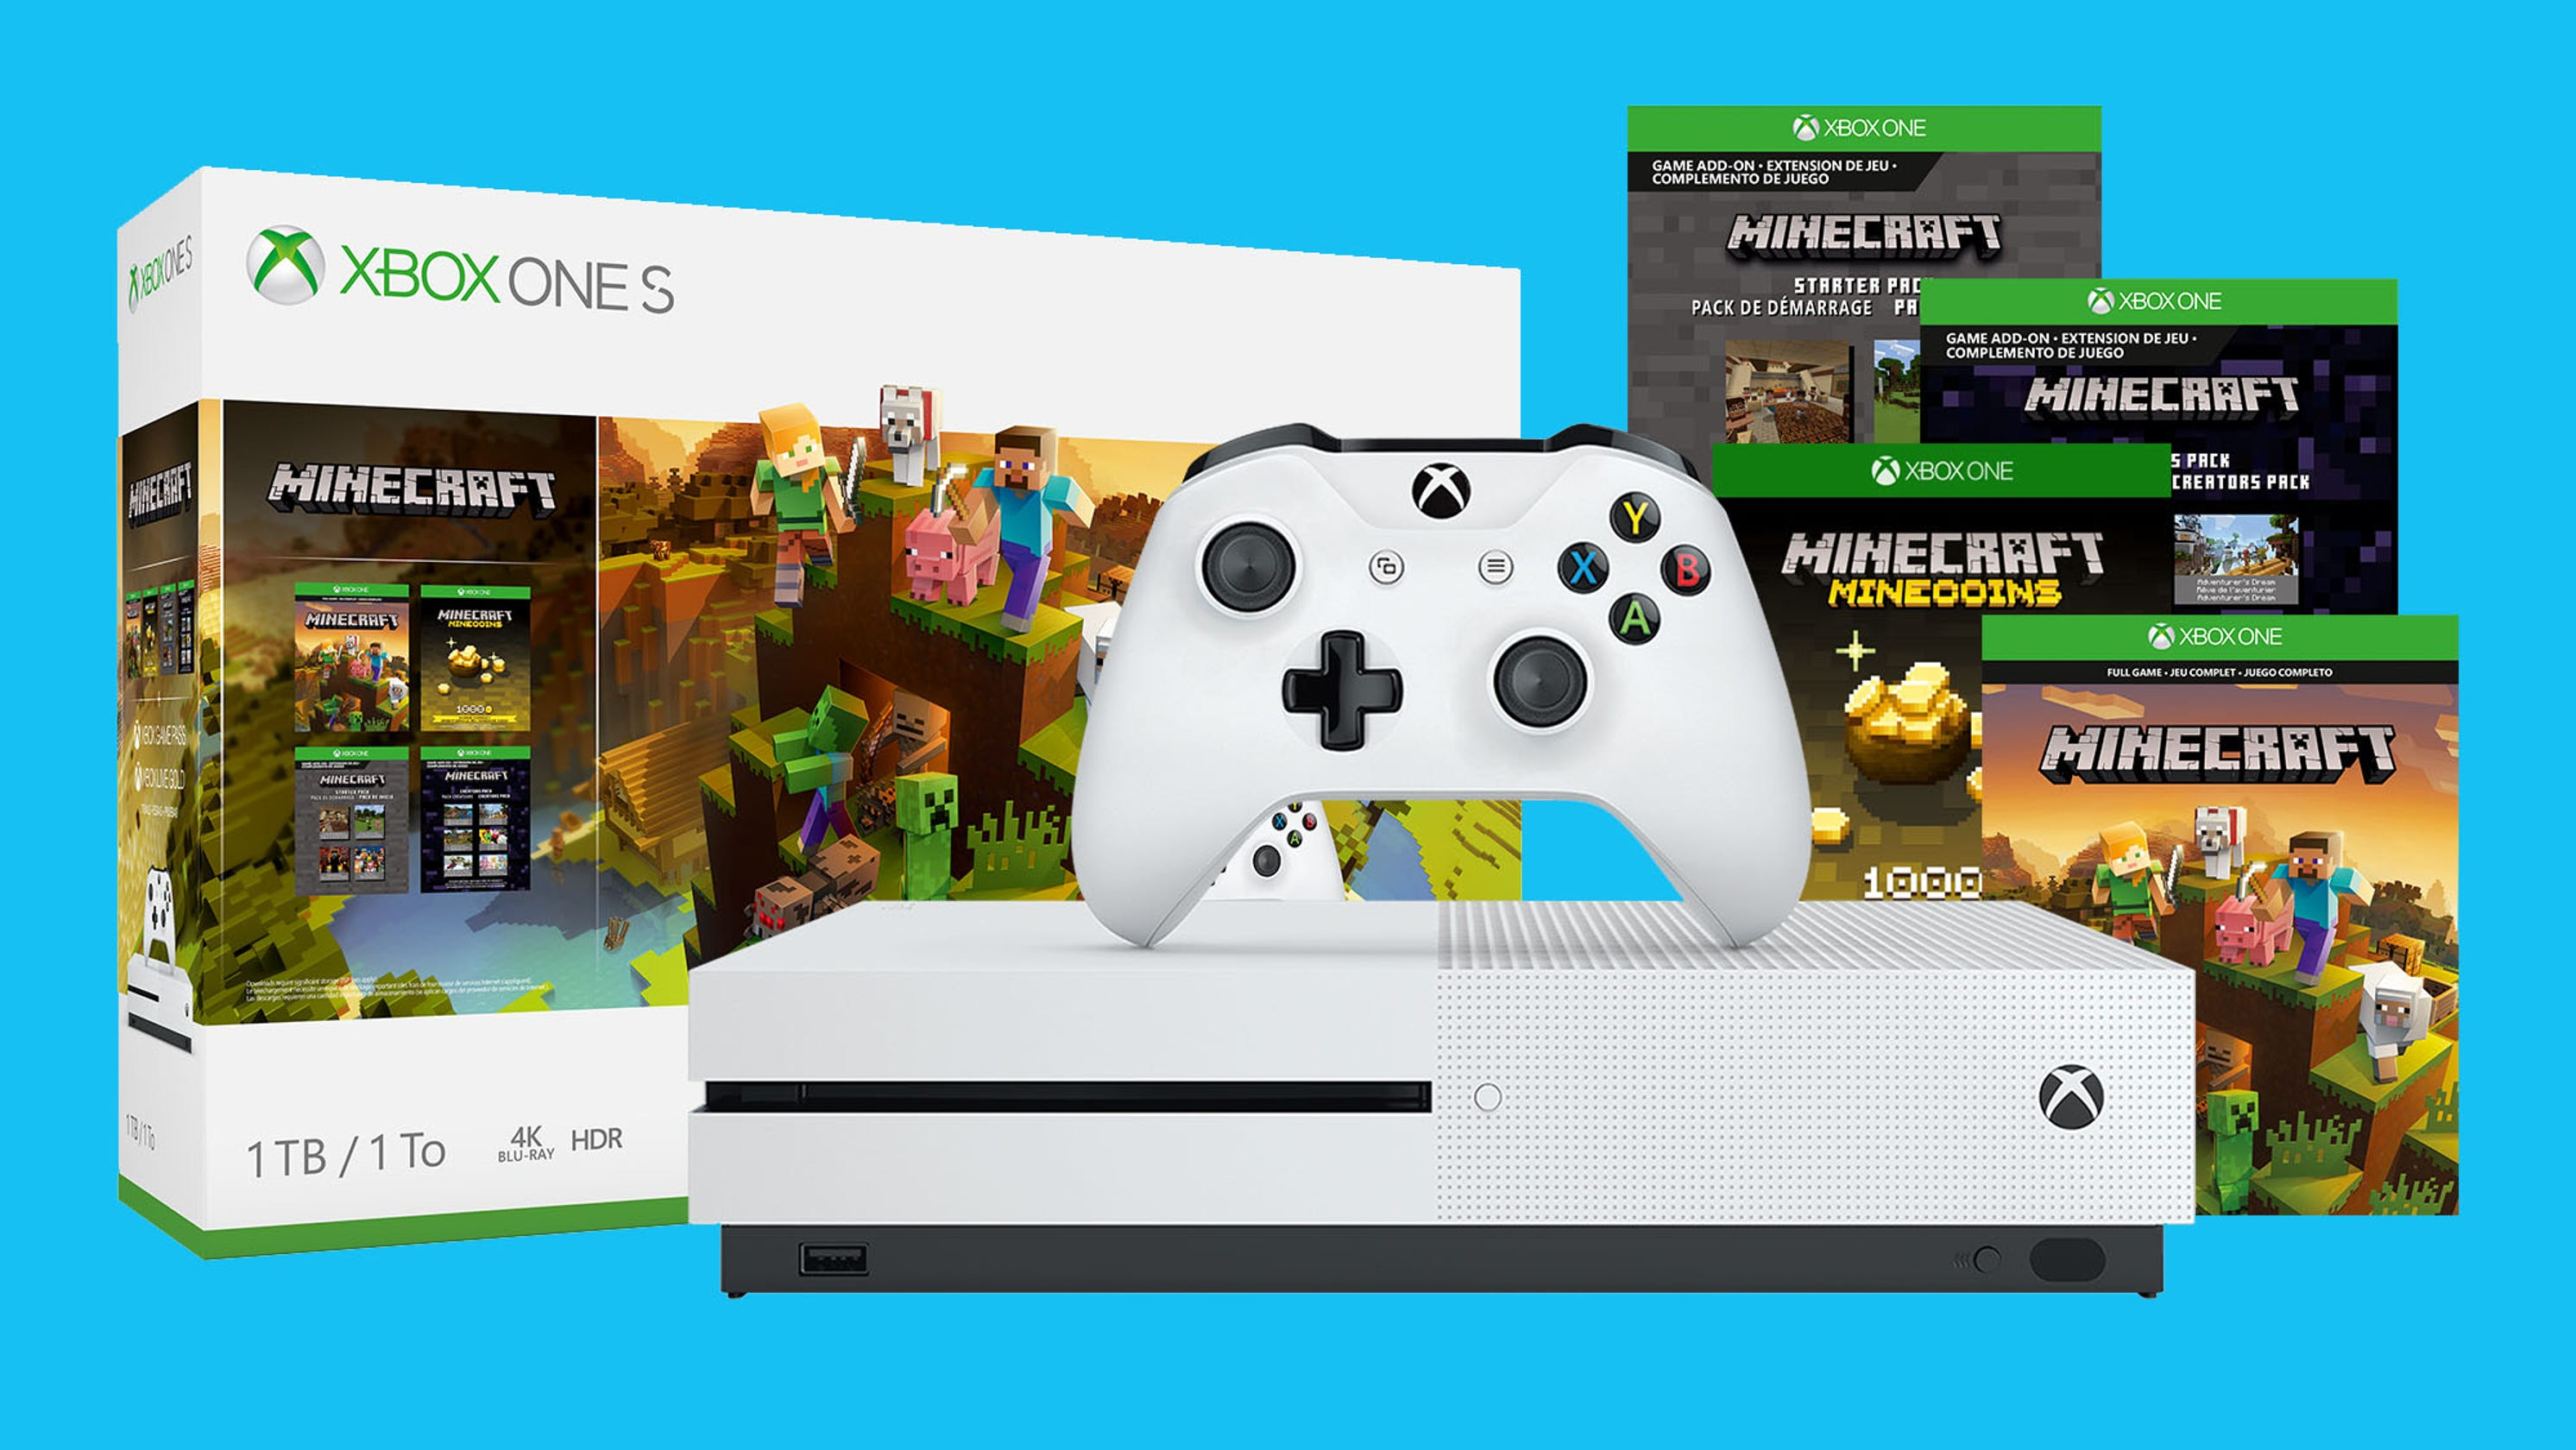 The best Walmart Black Friday deals of 2018: Xbox One